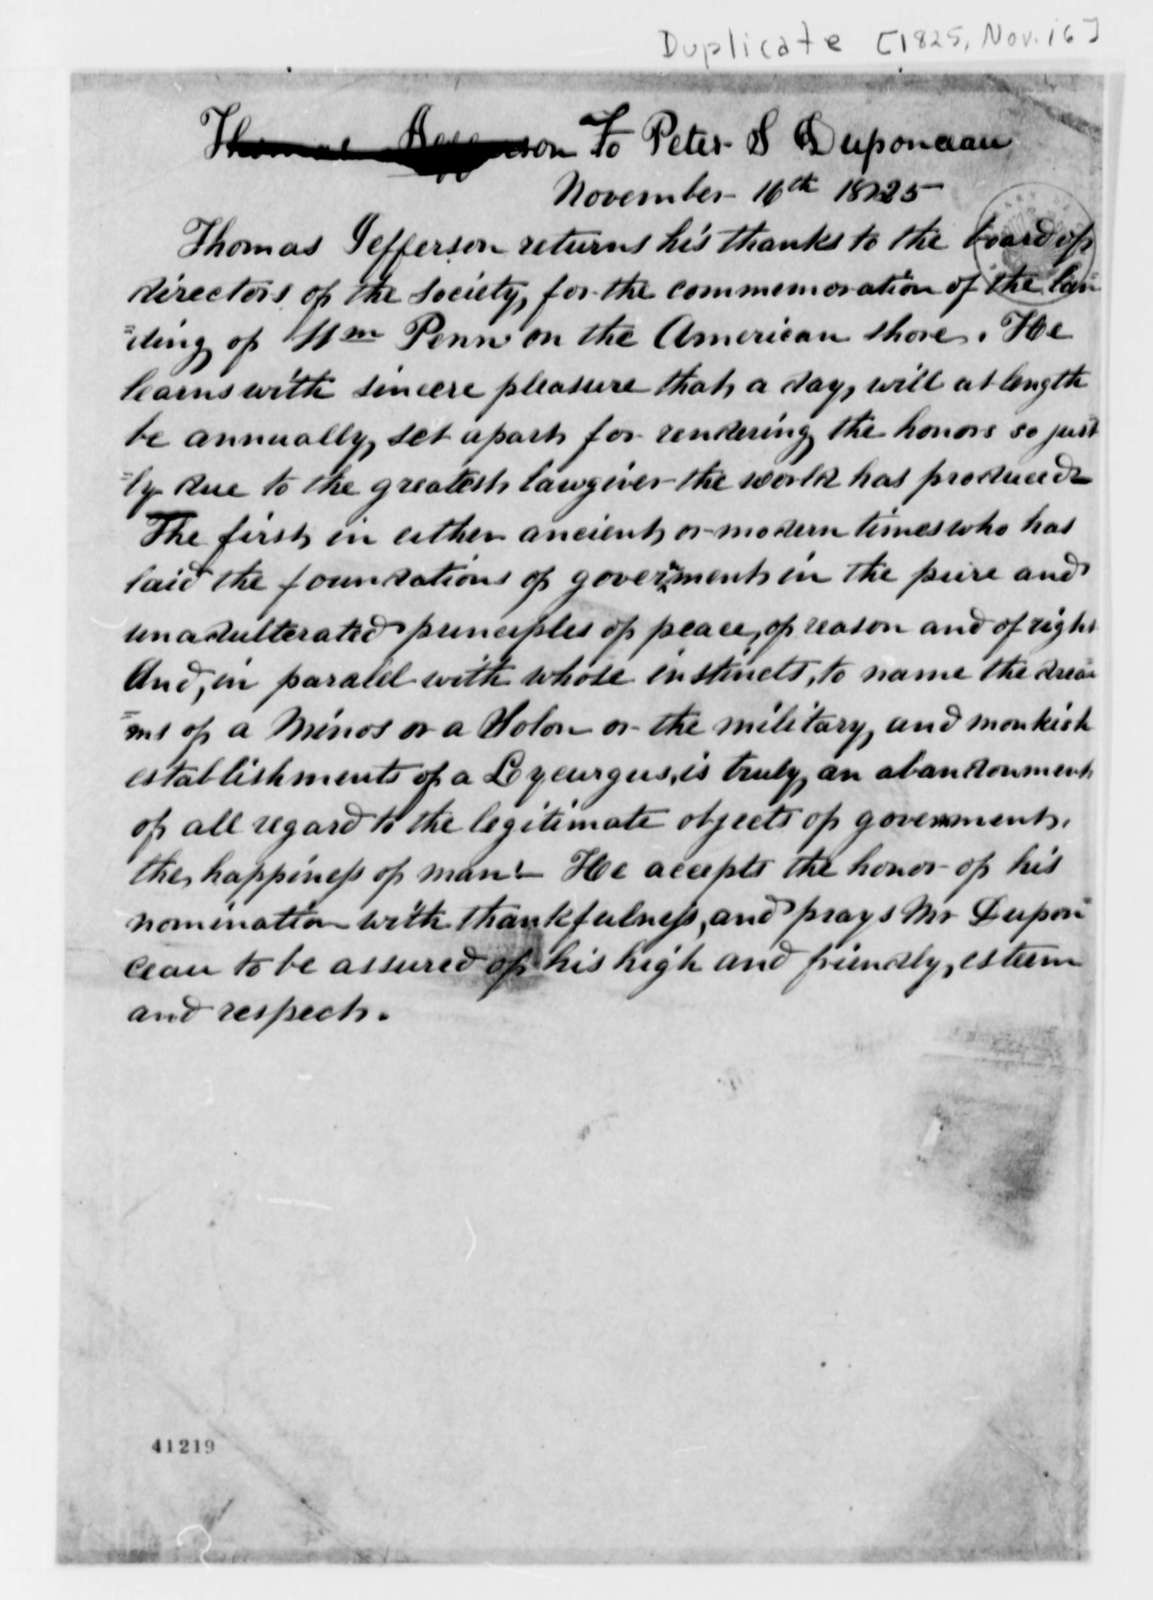 Thomas Jefferson to Peter S. du Ponceau, November 16, 1825, with Copy